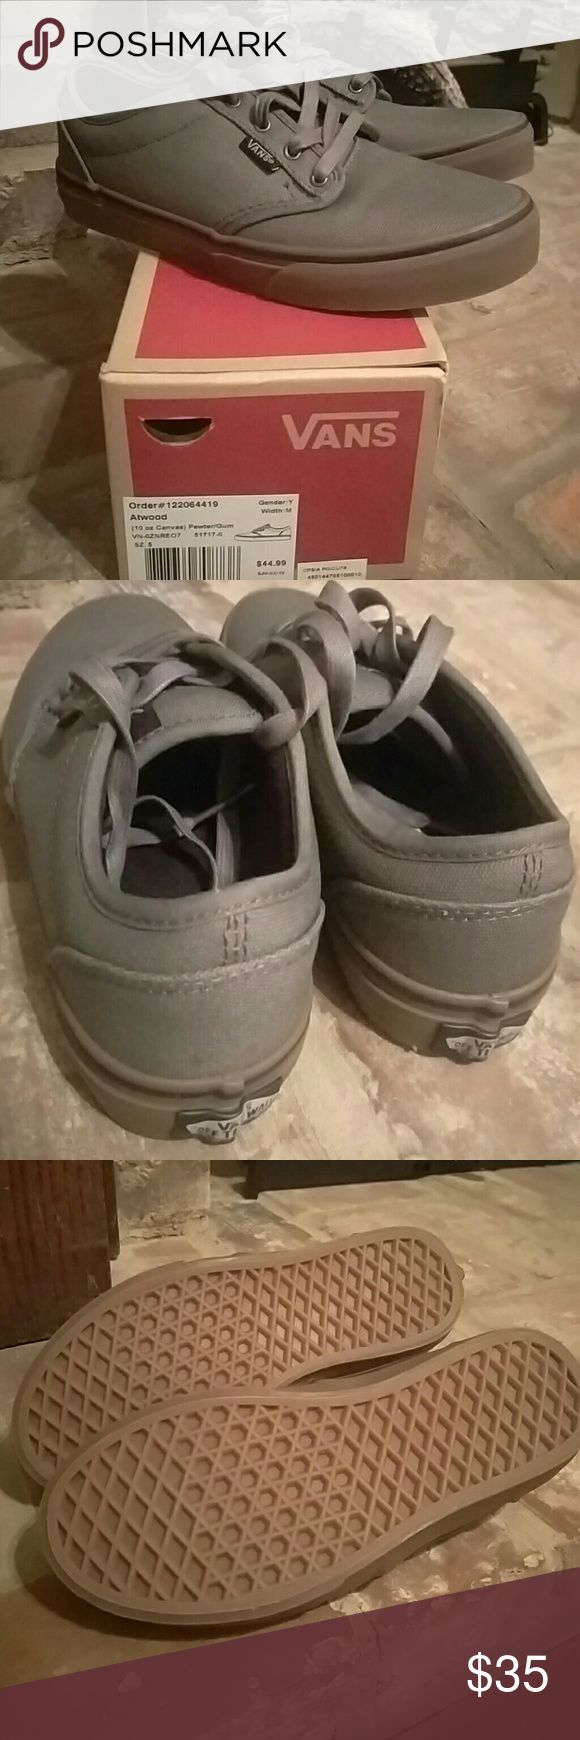 Boys VANS Atwood VANS Canvas Atwood in Pewter/Gum. Brand new, never worn. Still have box. Vans Shoes Sneakers